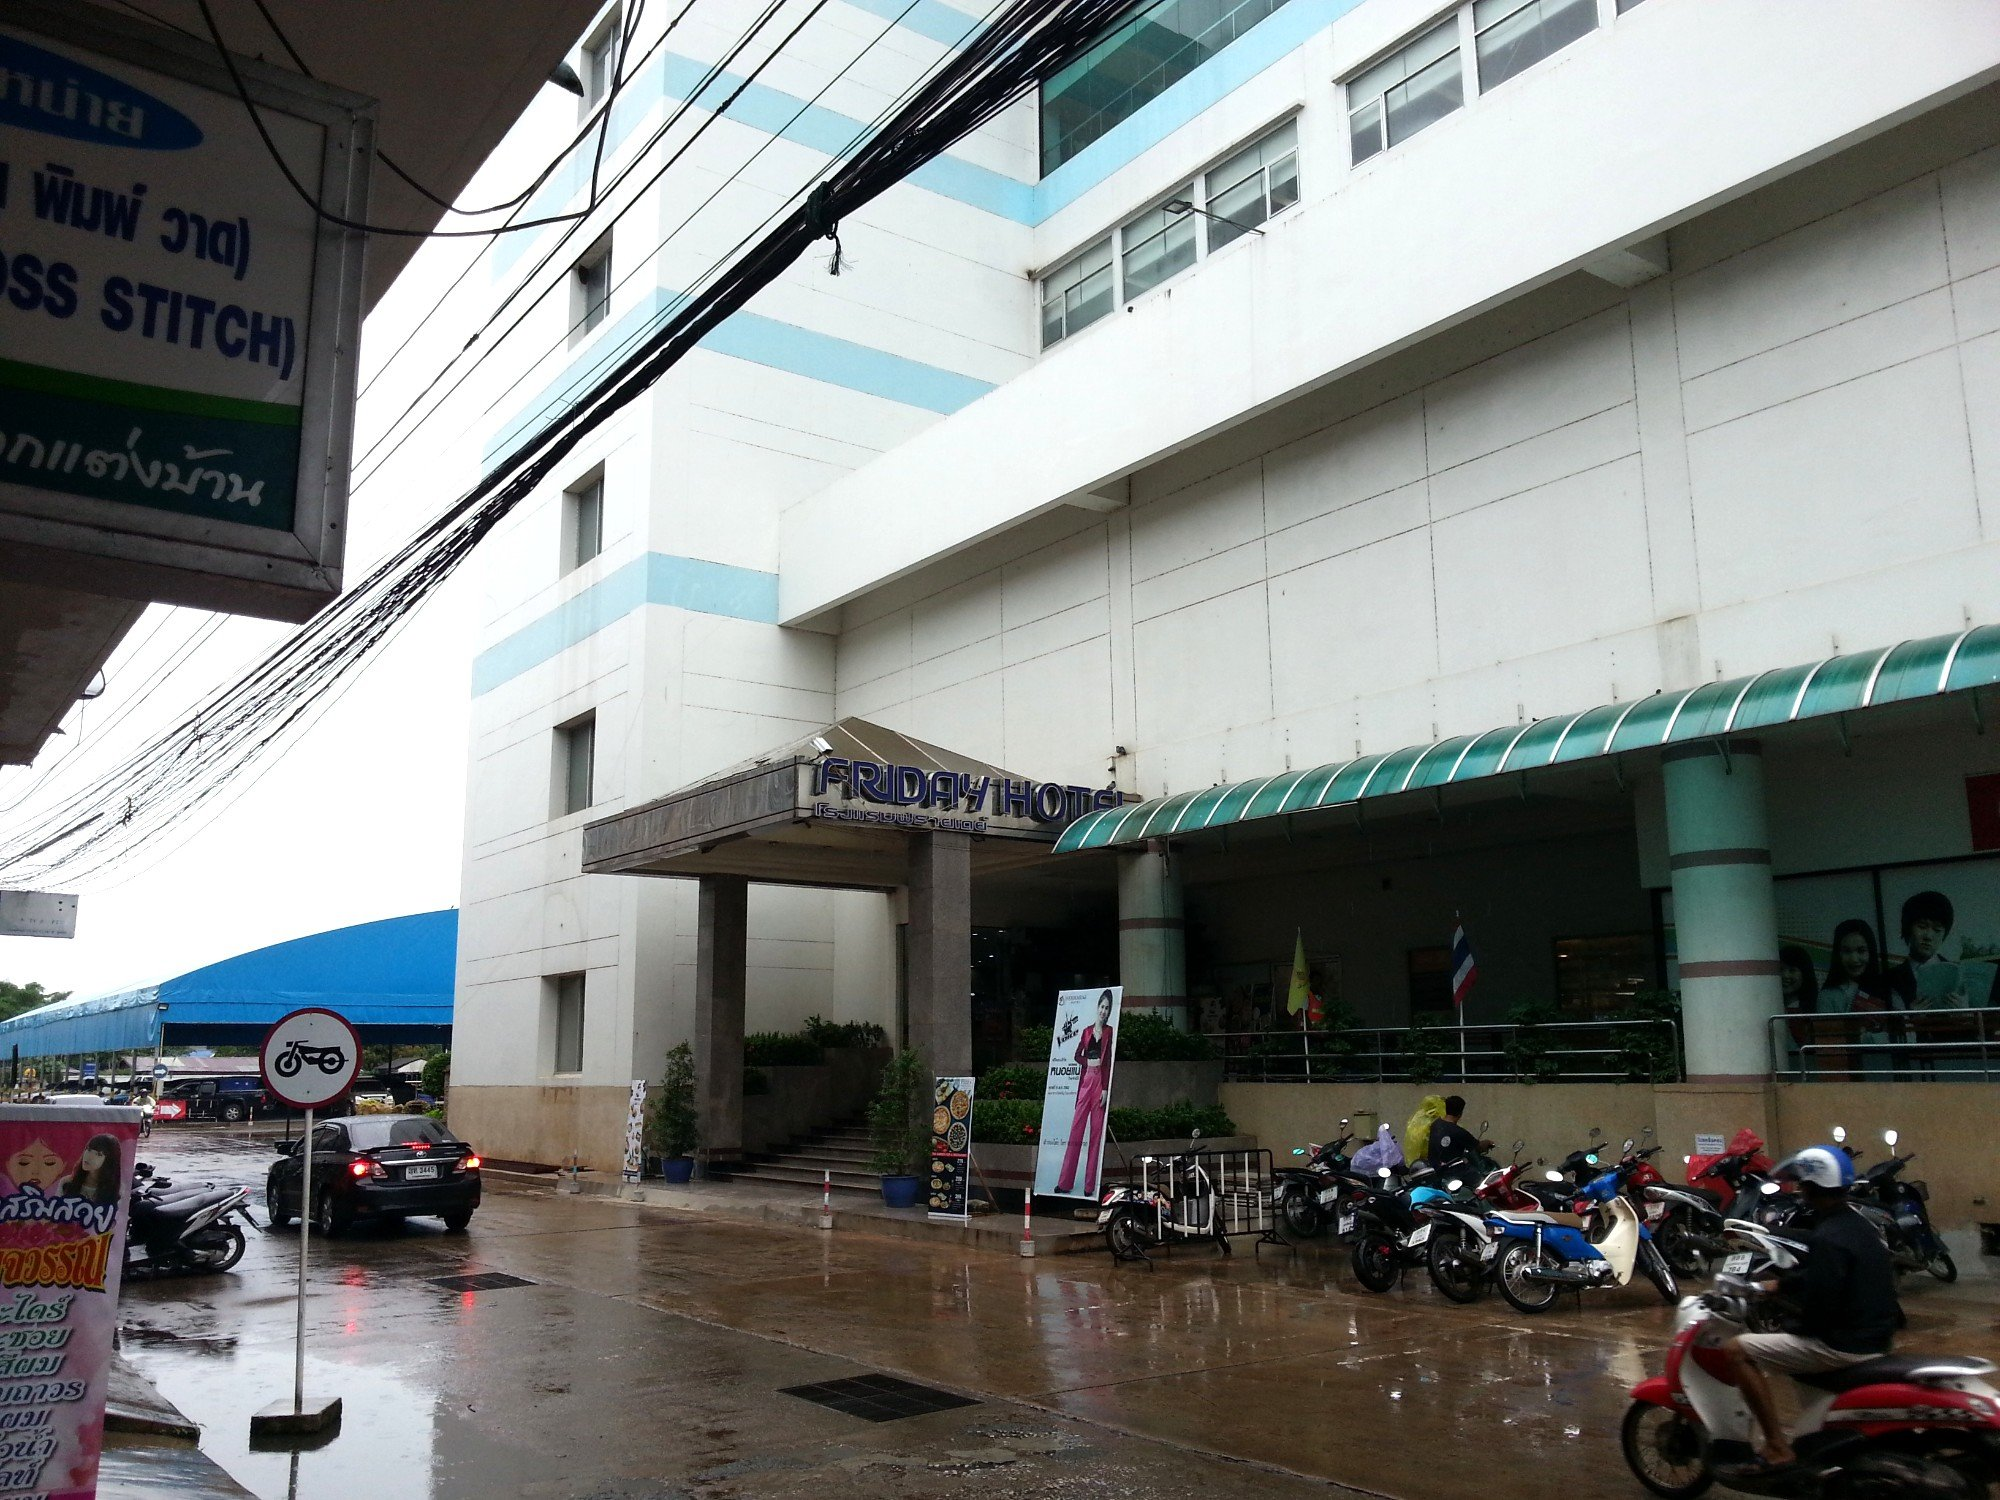 Entrance to the the Friday Hotel in Uttaradit